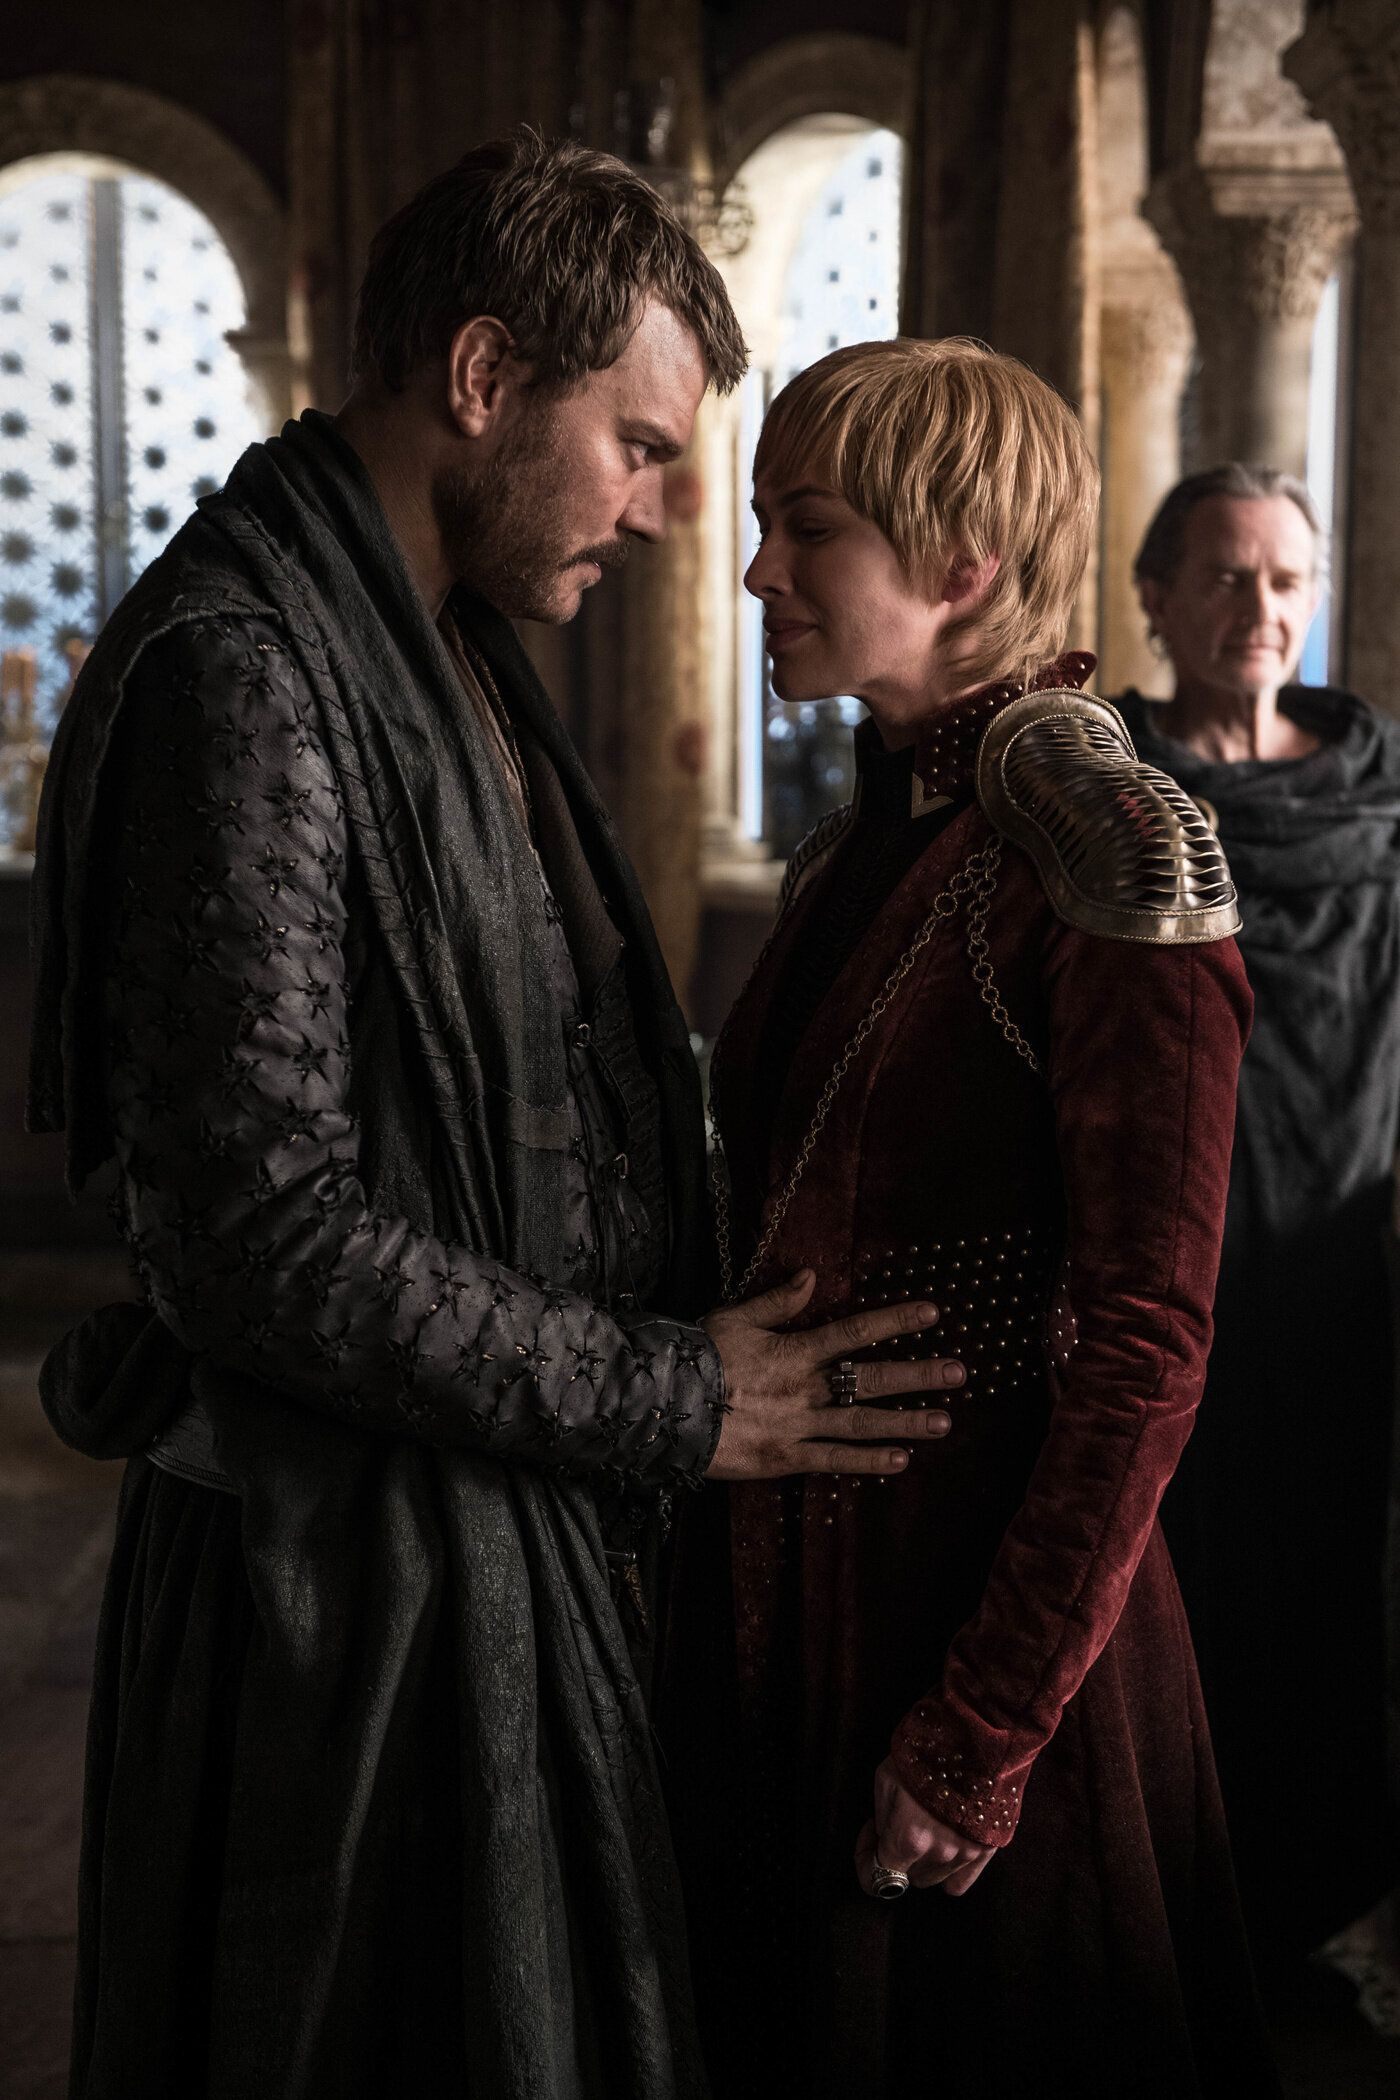 Cersei just hoping Maury isn't going to bust in with the DNA results.